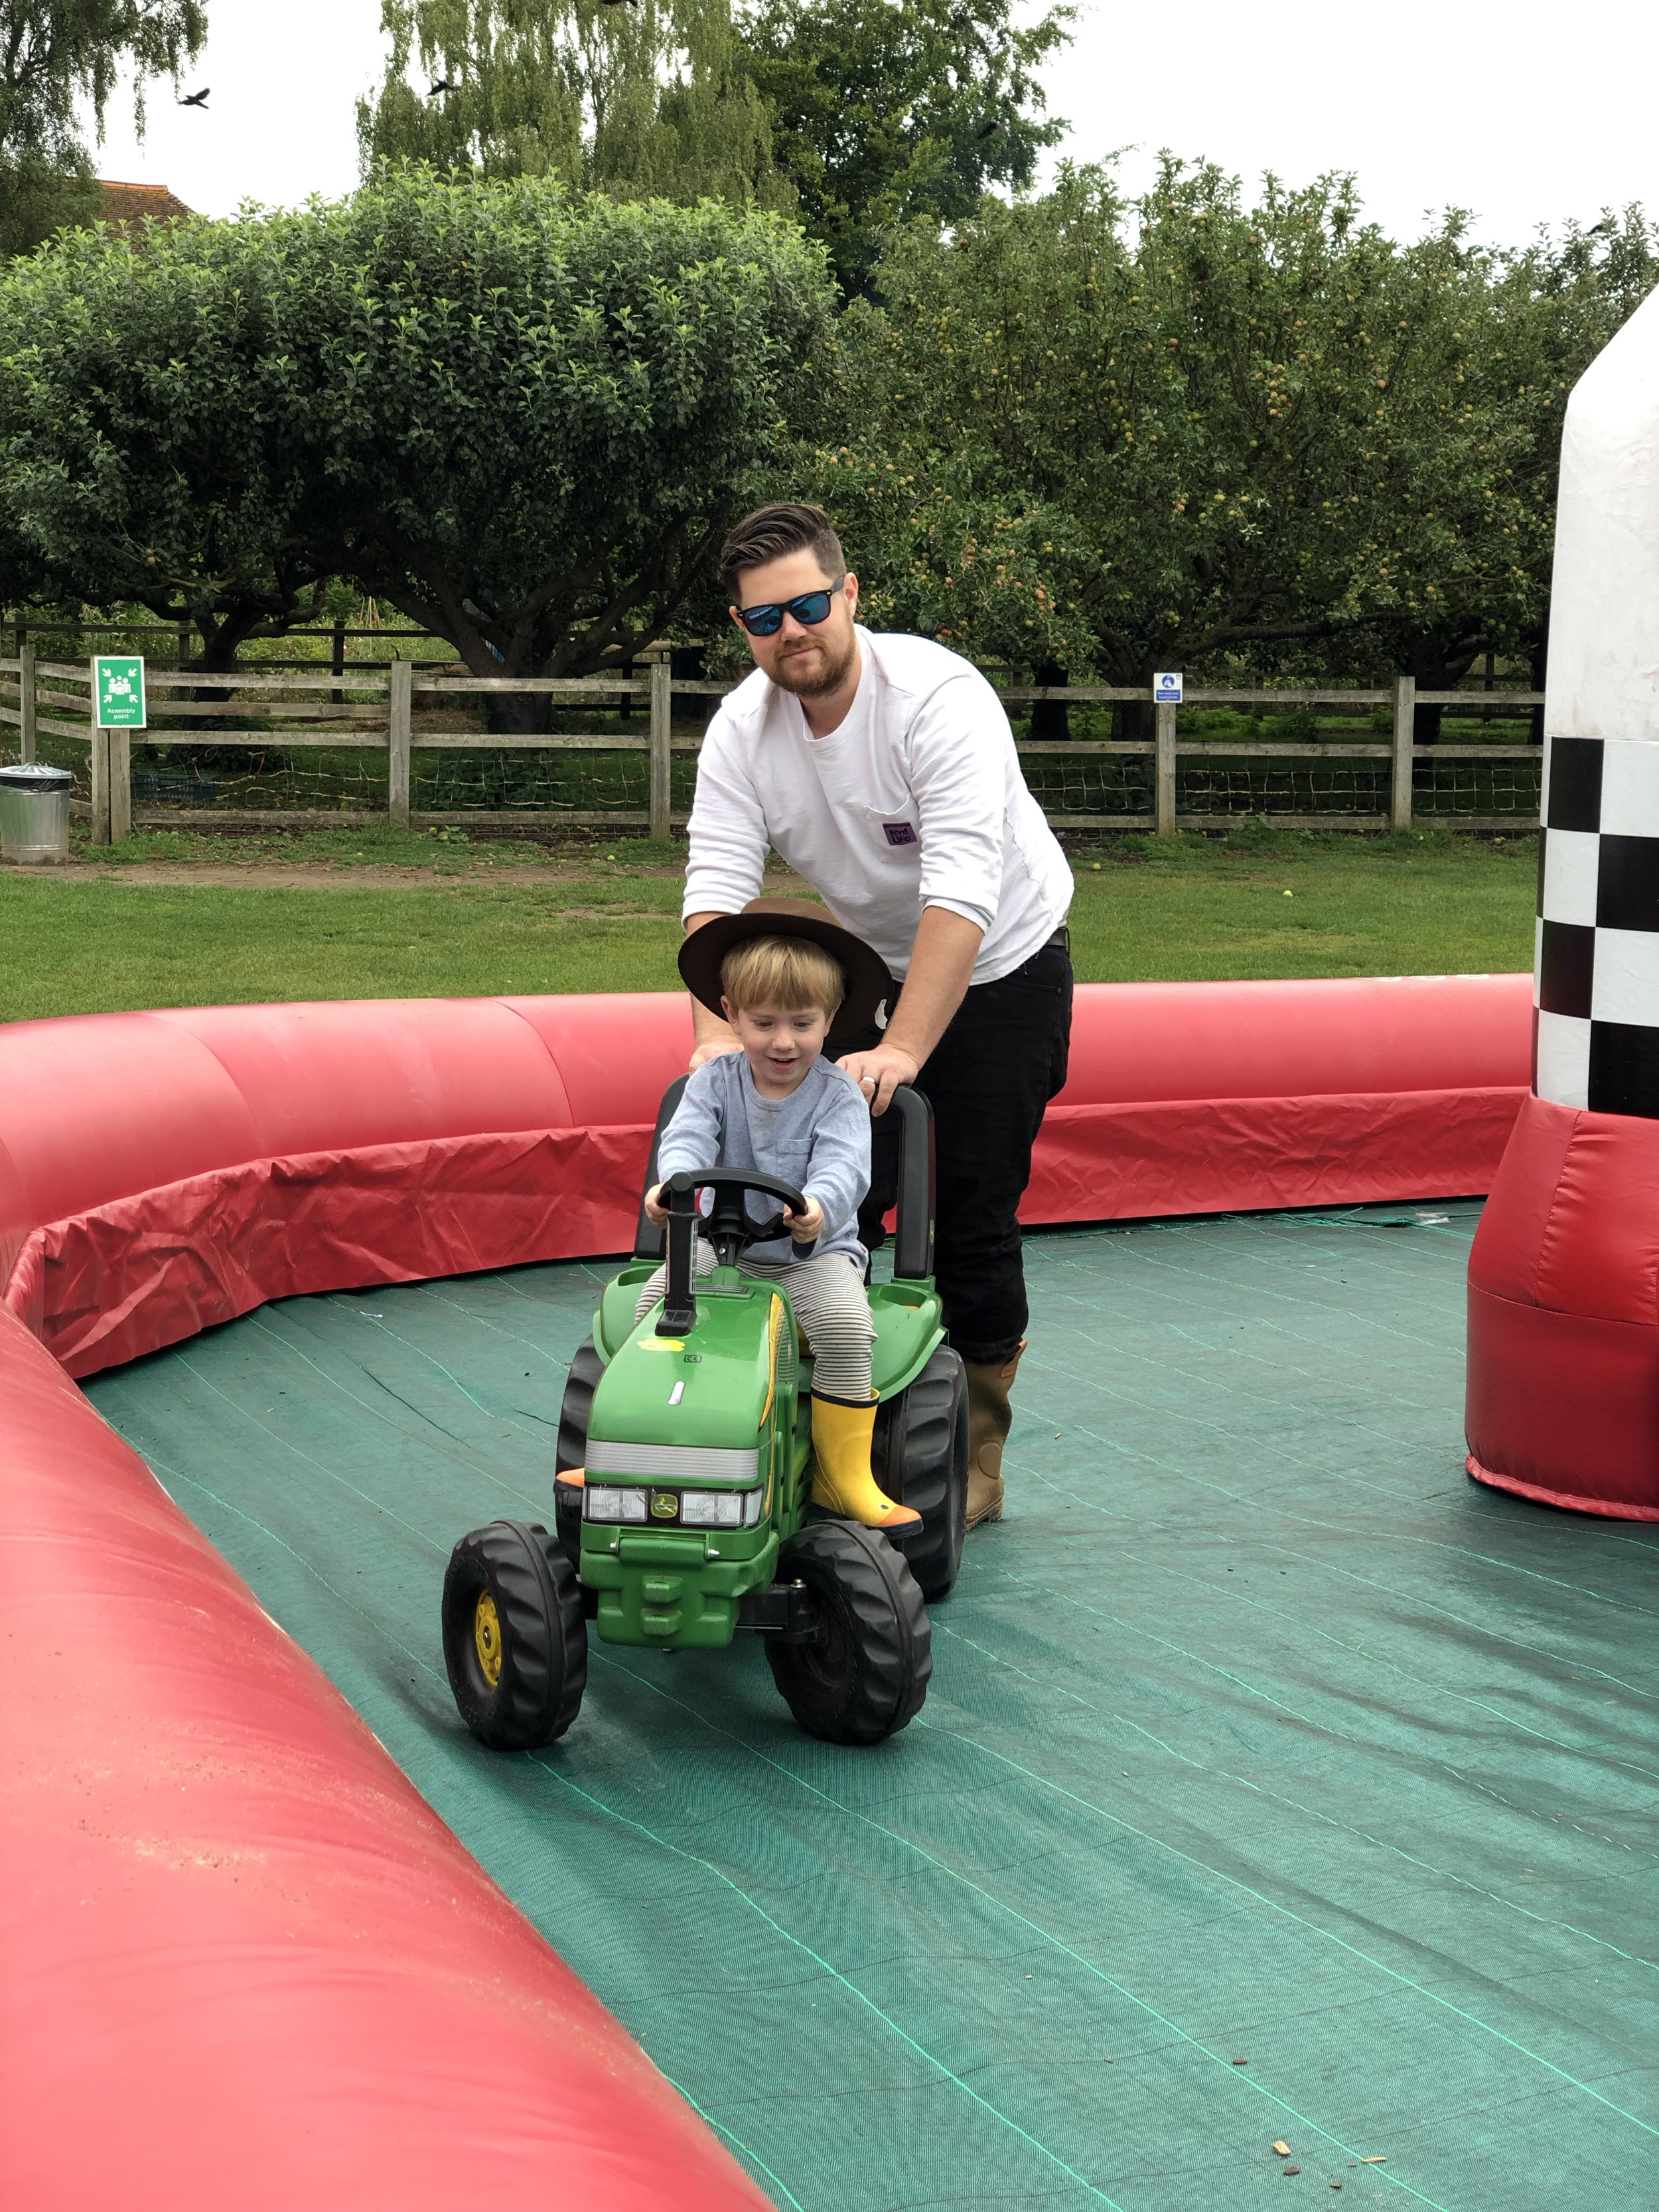 kent-life-farm-maidstone-family-day-out-support-local-magazine-tractor-ride.jpg